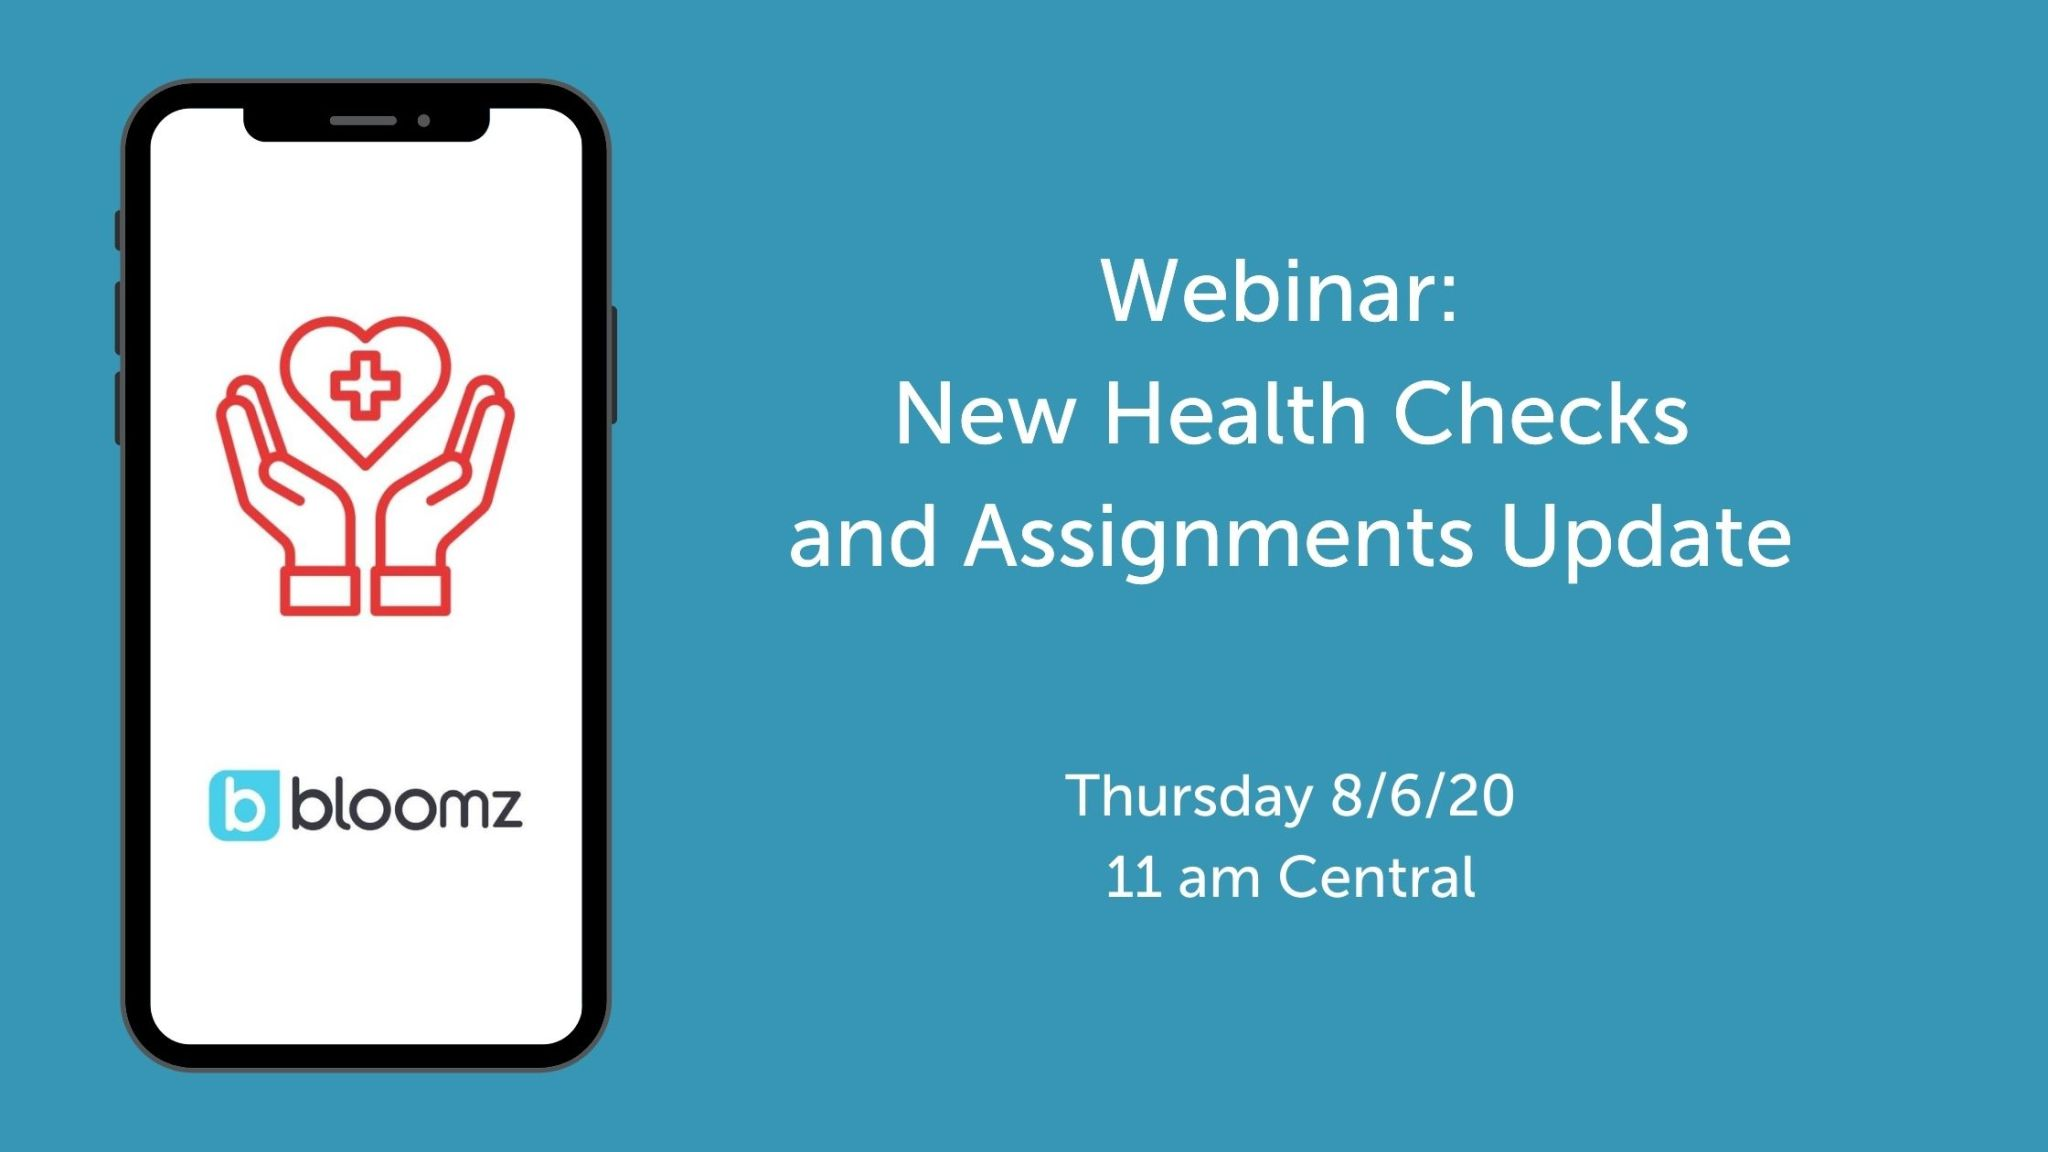 Webinar- New Health Checks and Assignments Update